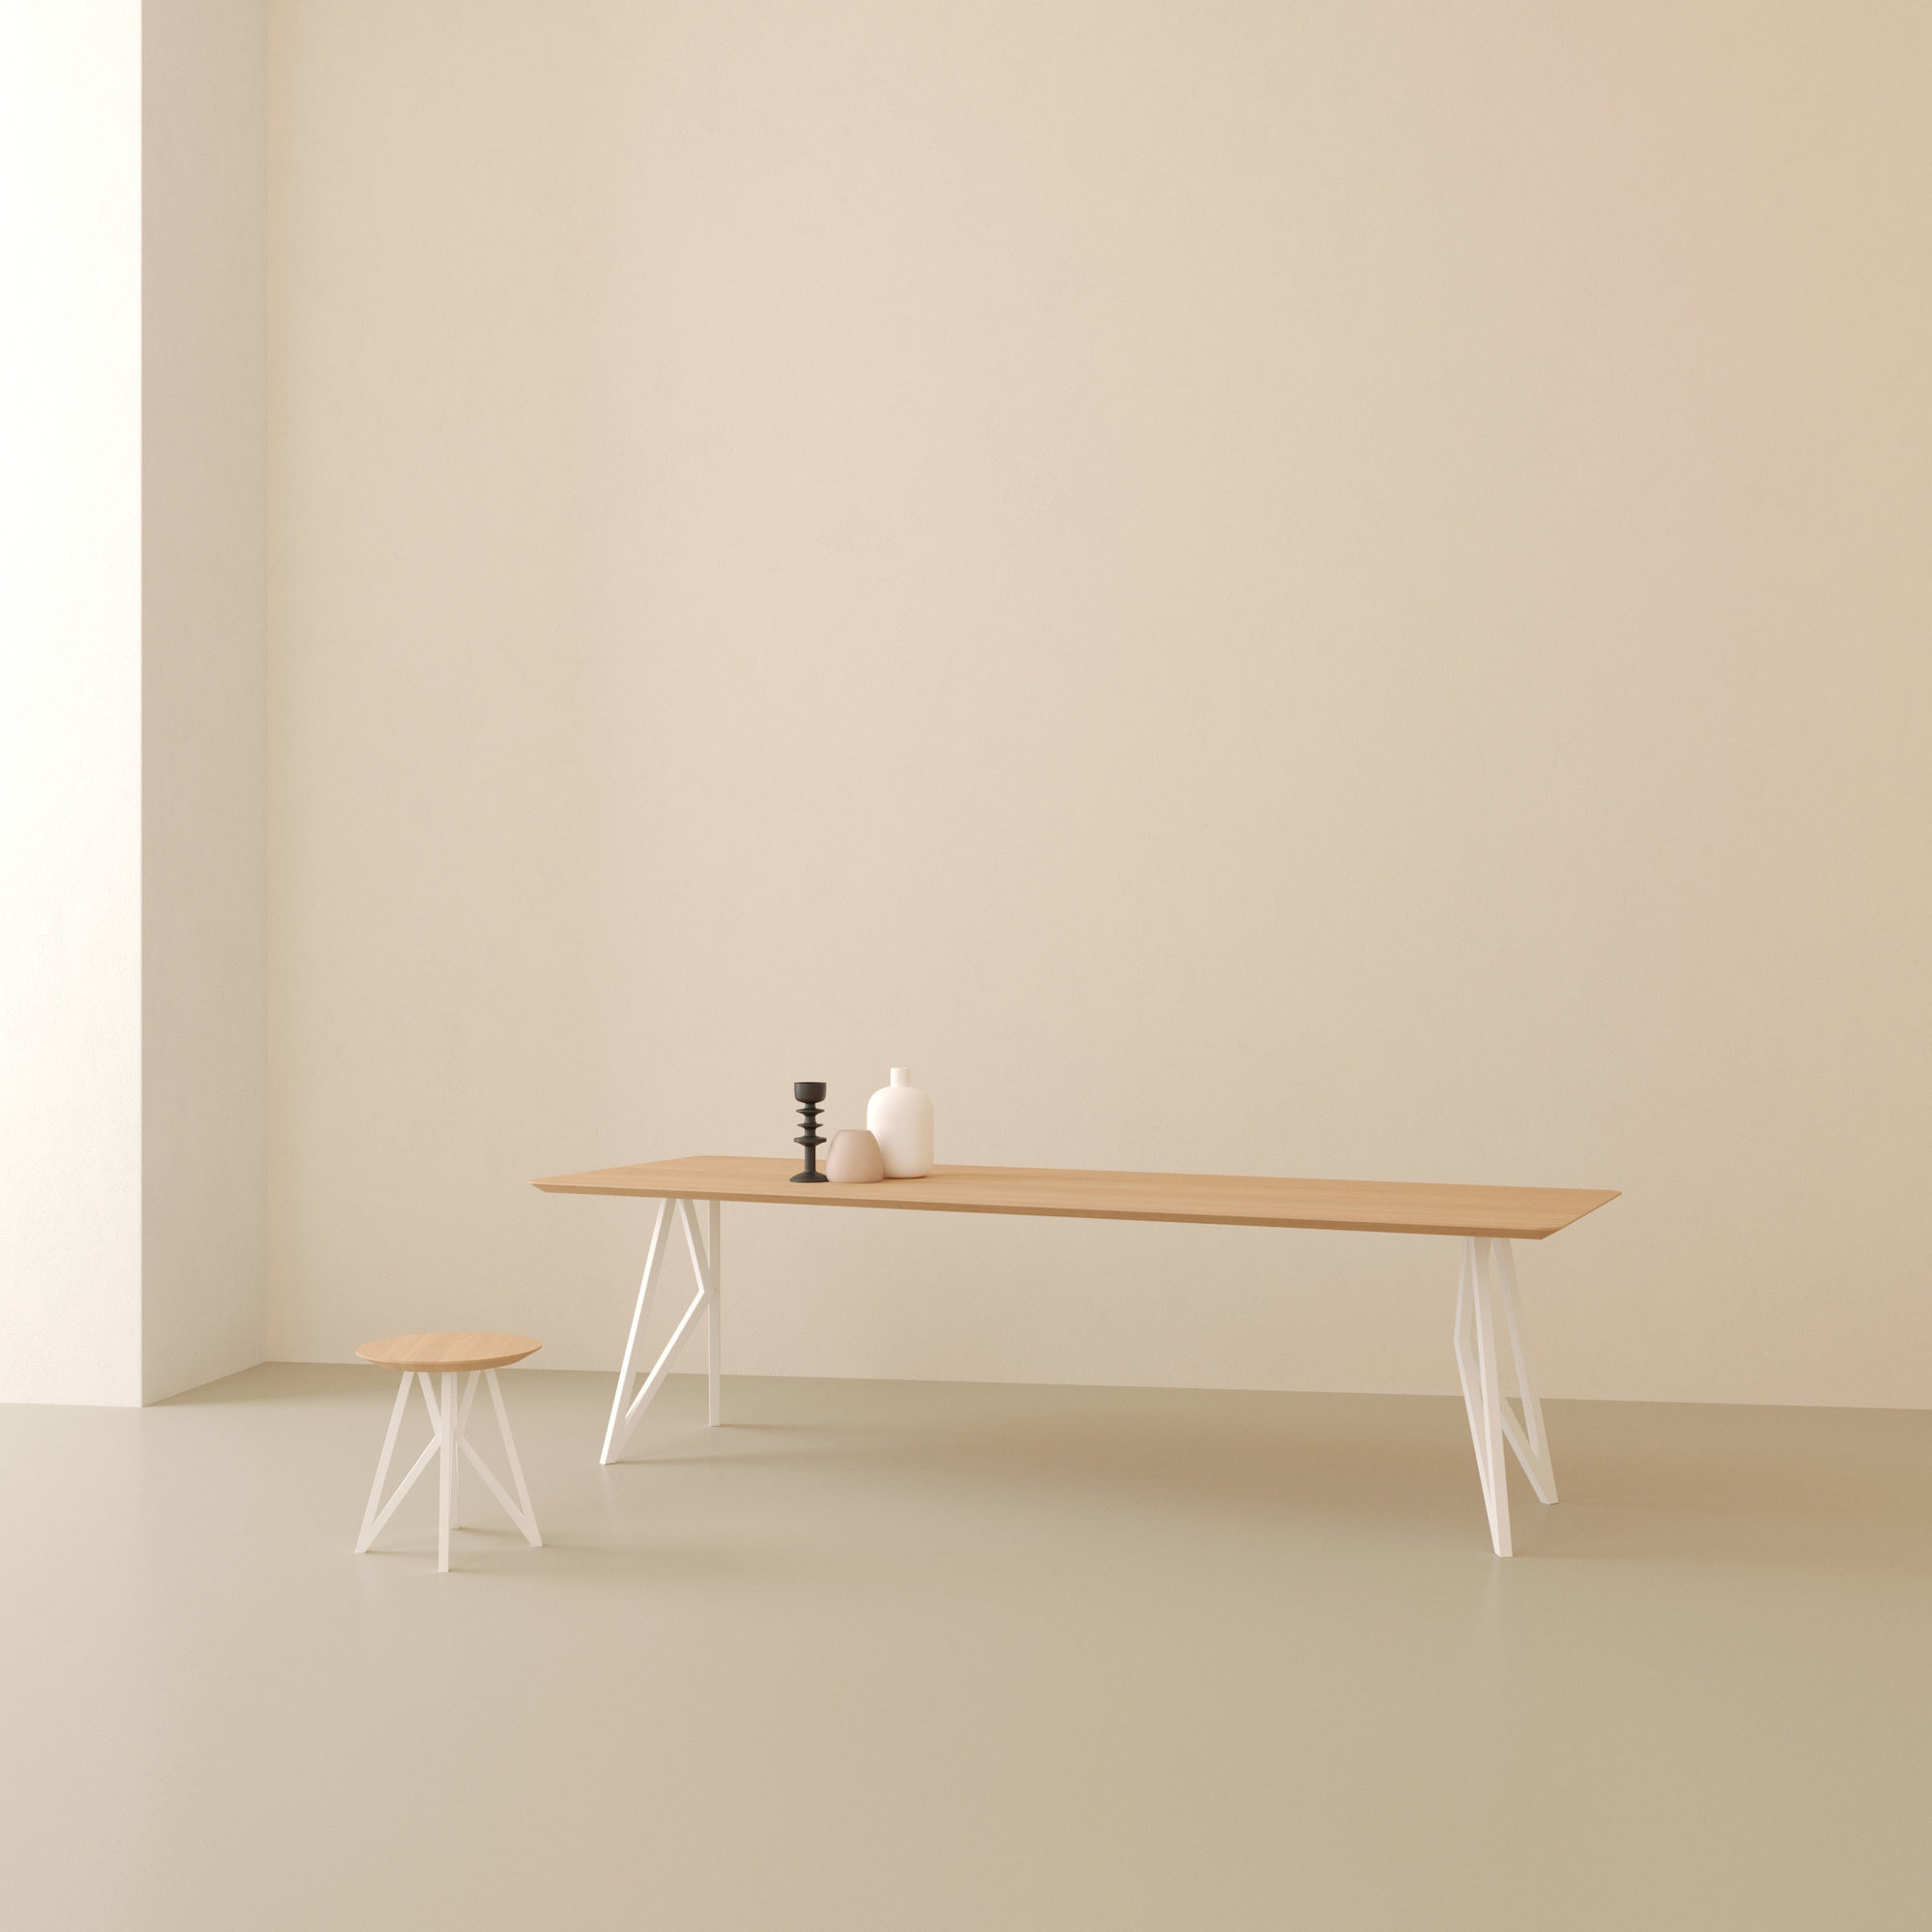 Design salontafel | Butterfly Quadpod Coffee Table White | Oak hardwax oil natural 3062 | Studio HENK | Setting